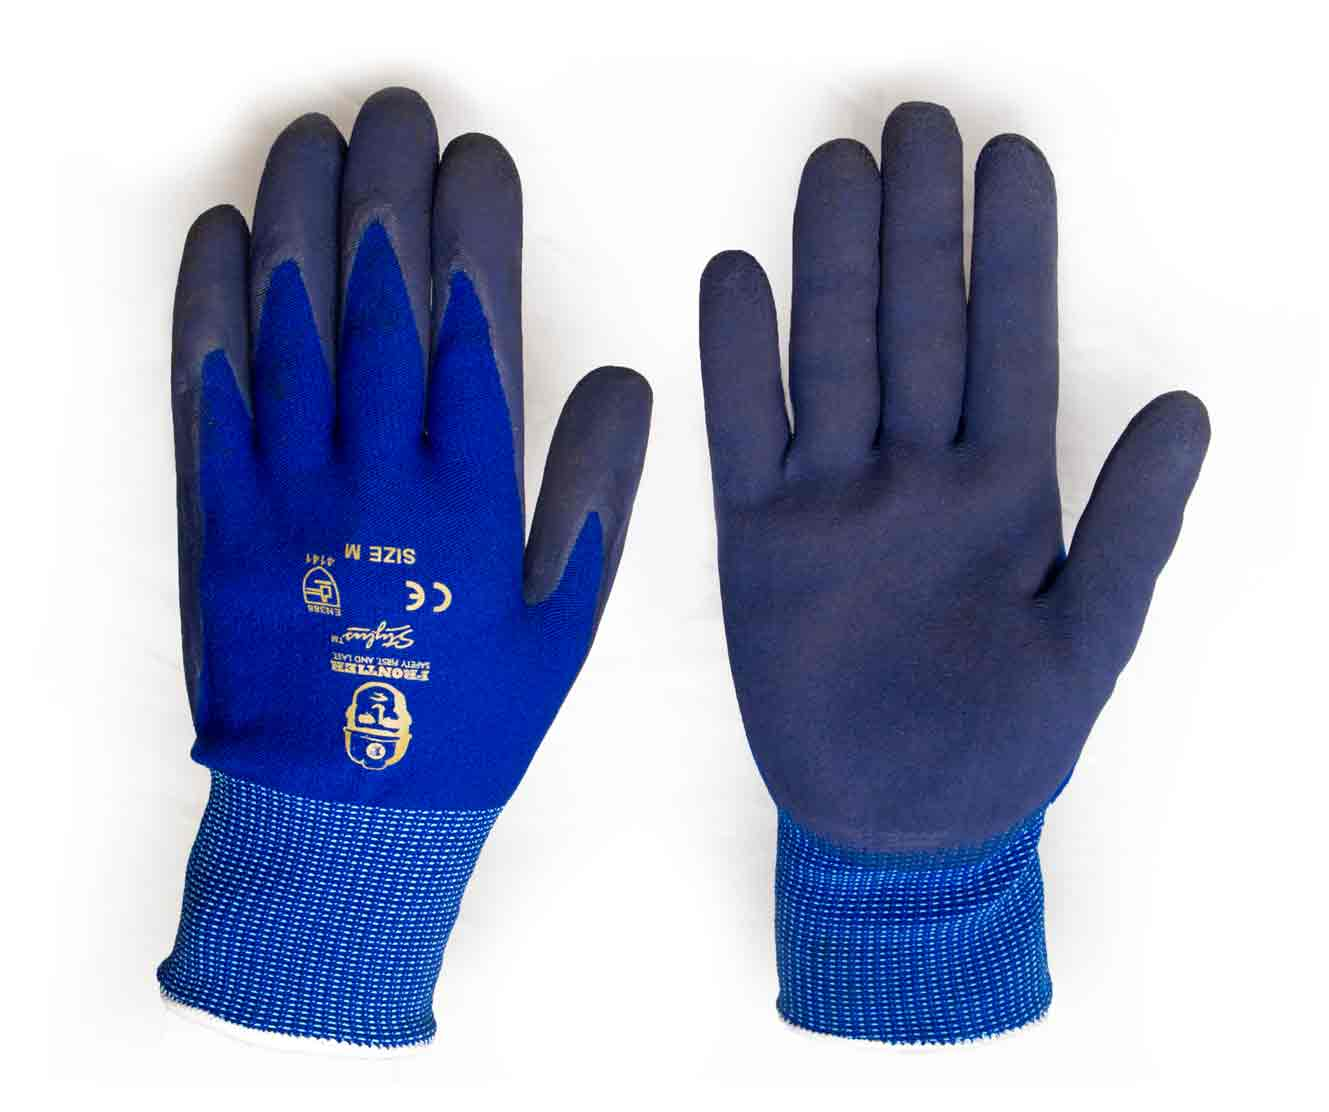 stylus work gloves frontier safety hand protection buy PSTYLUS online australia